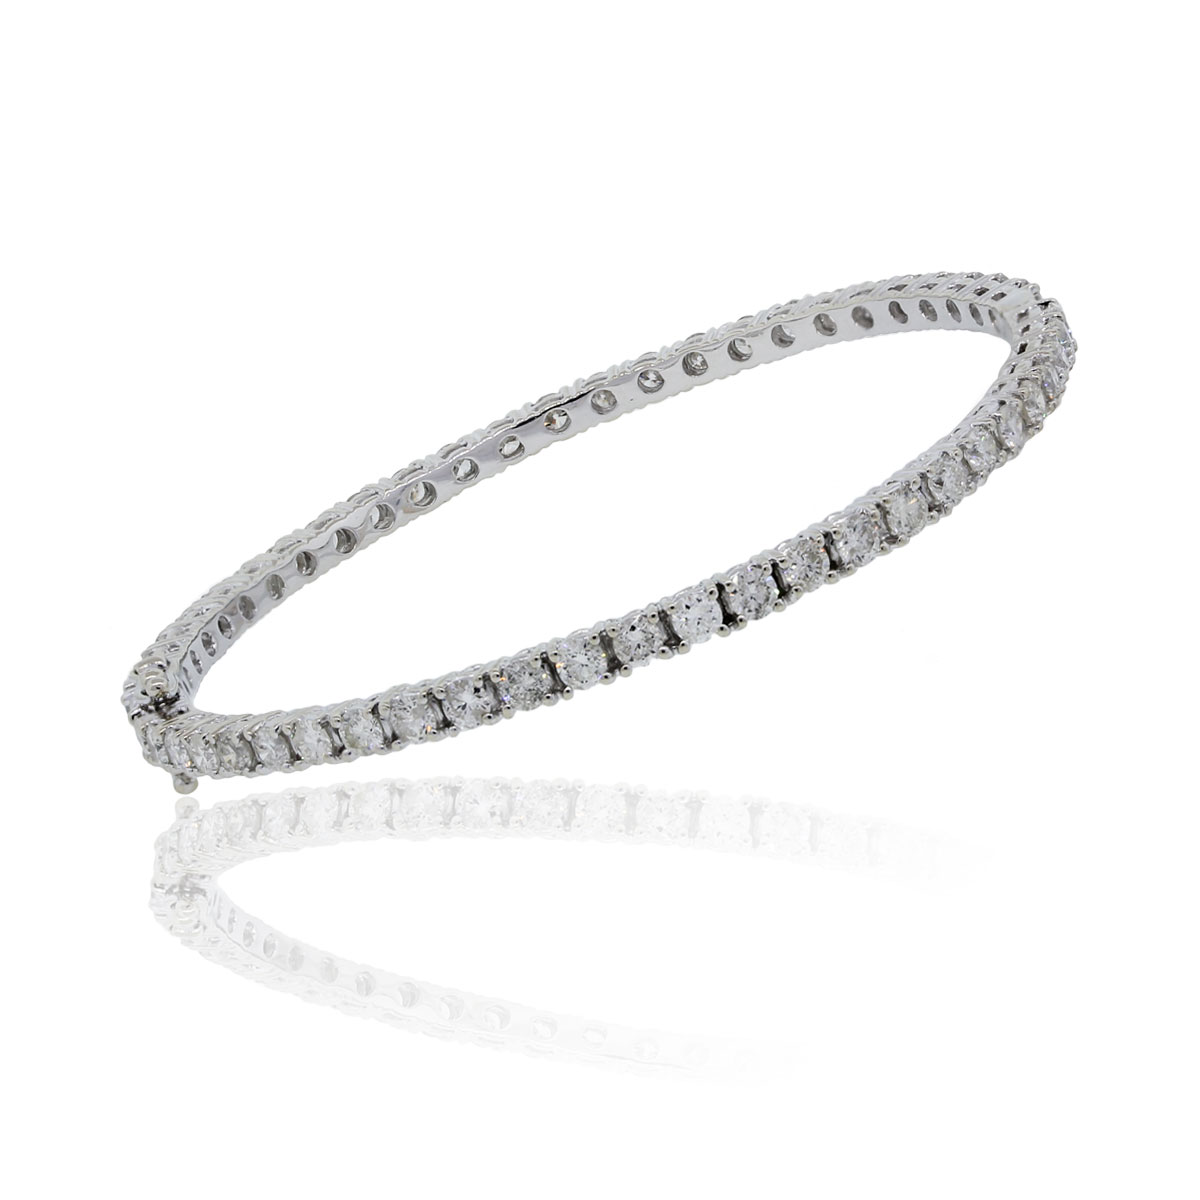 You are viewing this 18k White Gold 3.12ctw Round Brilliant Diamond Bangle Bracelet!